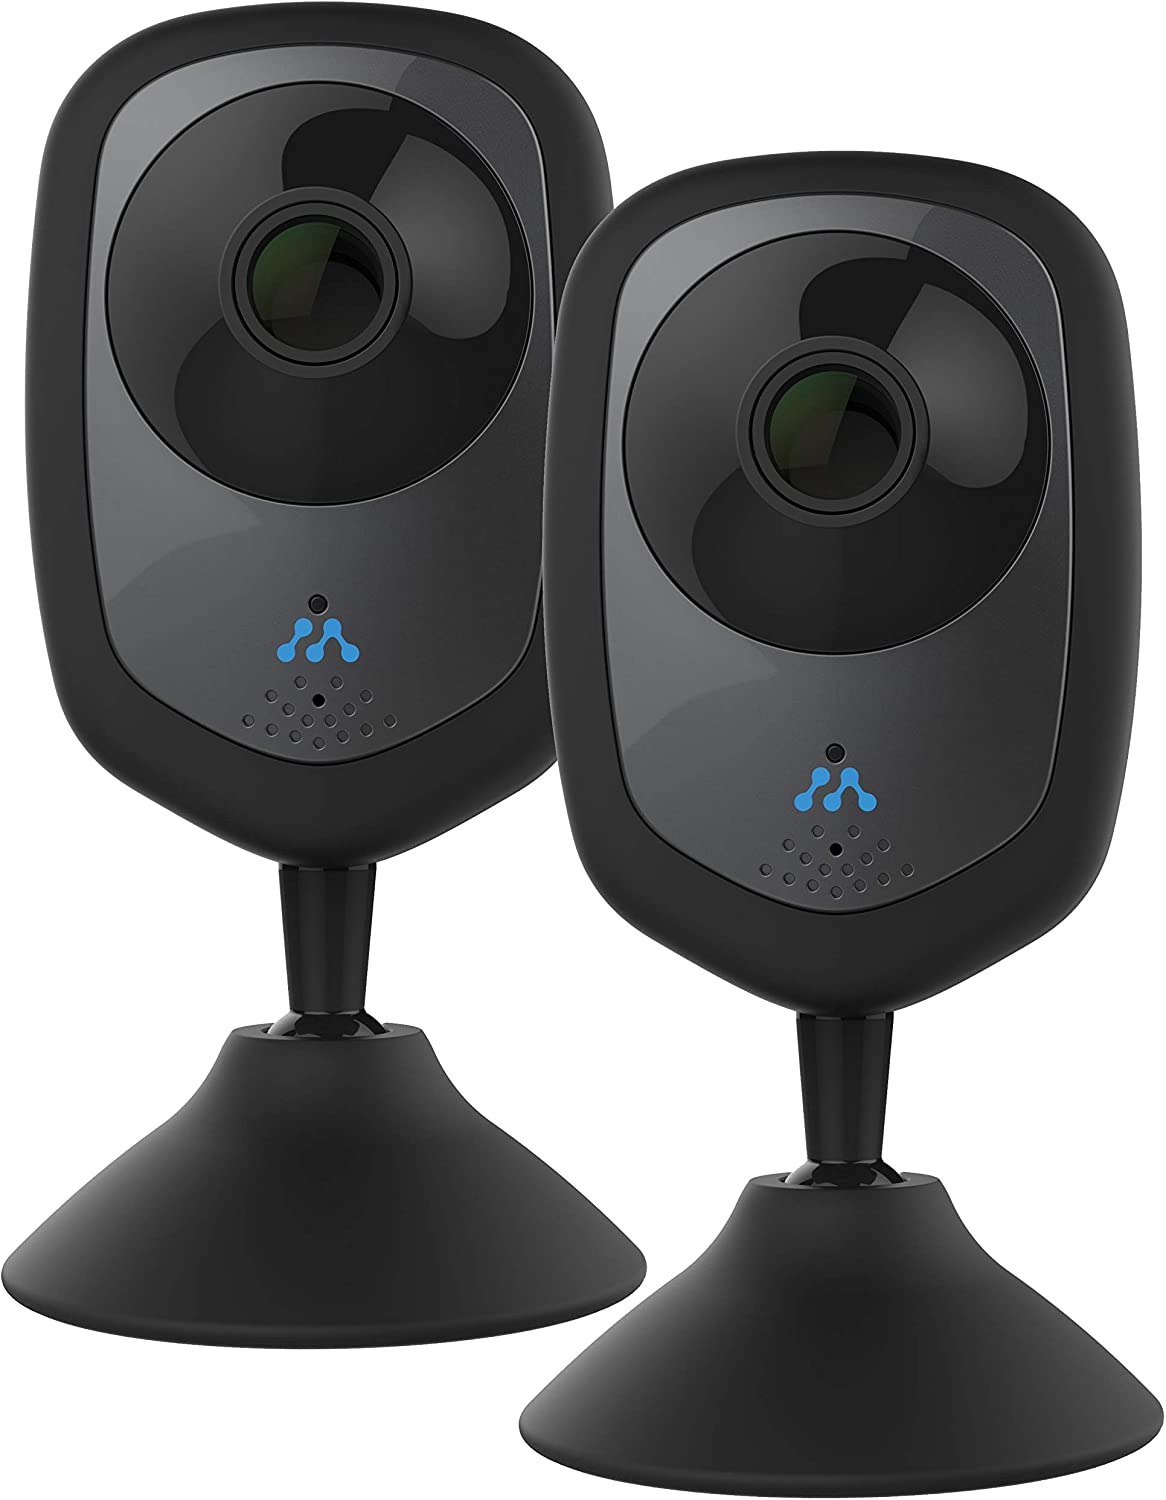 Momentum HD Wireless Indoor Home Security Camera with 2-Way Audio, Night Vision, Pet Monitor for iOS & Android (2 Pack)